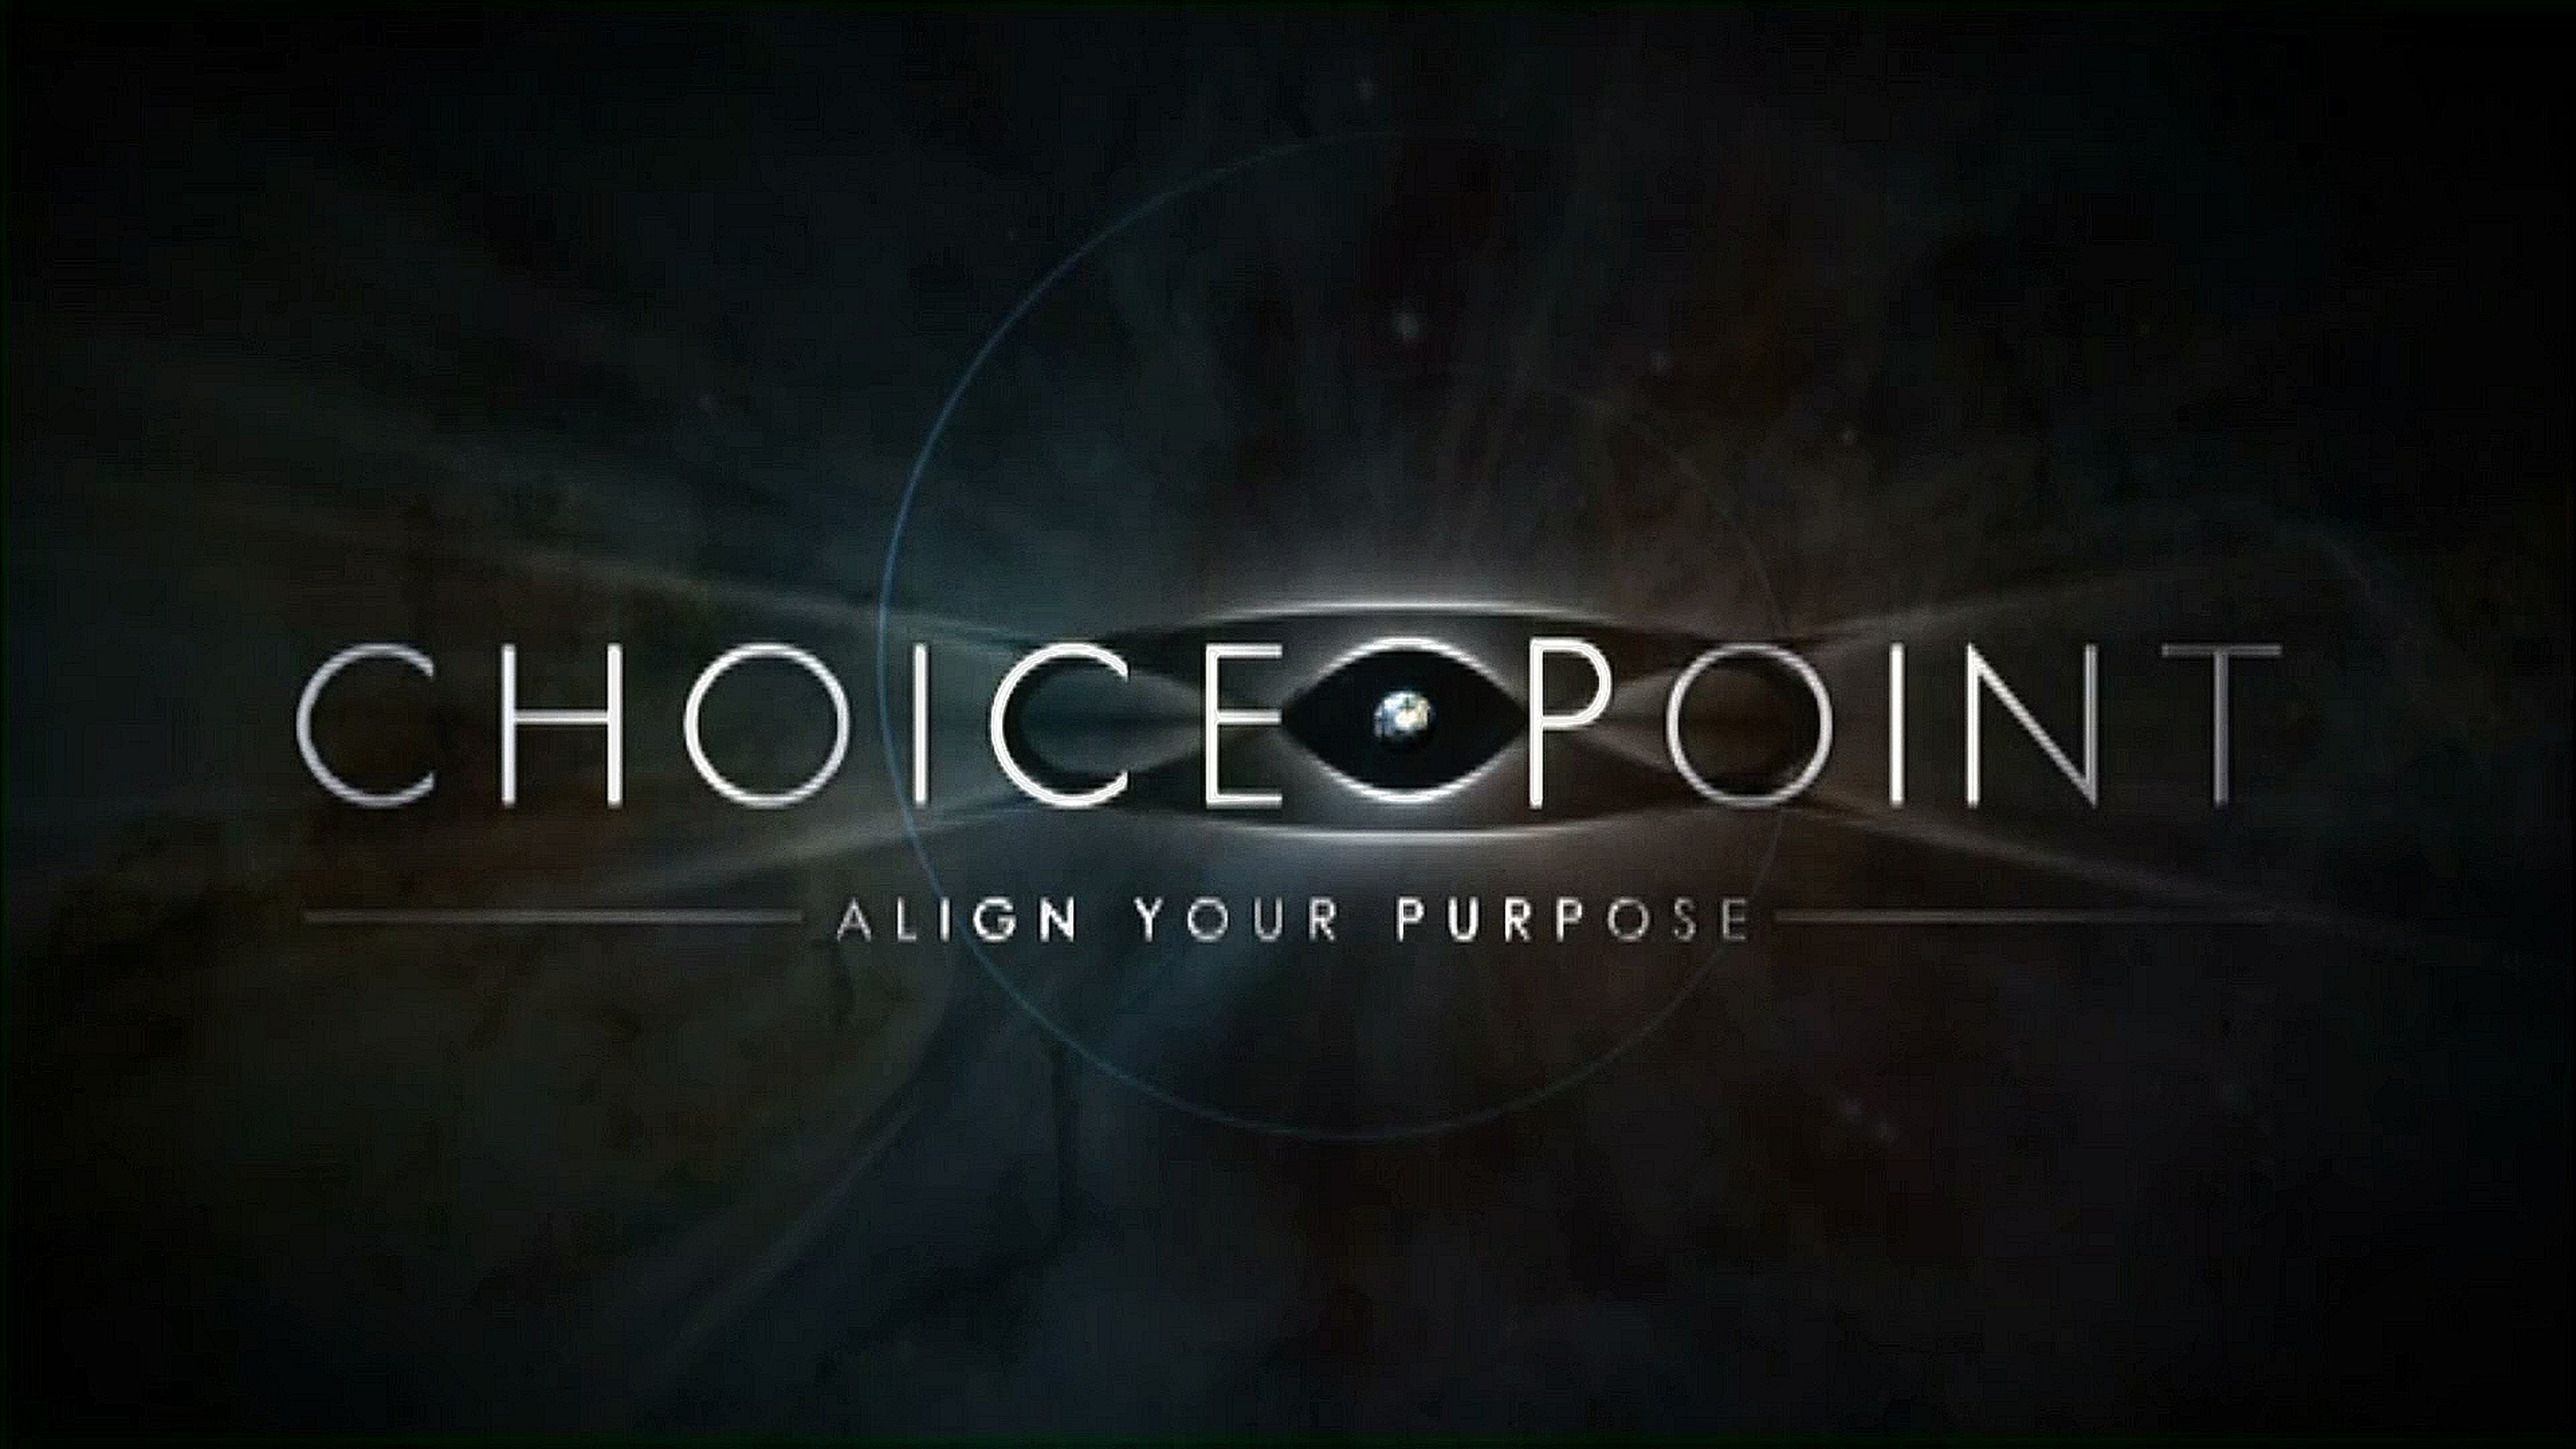 Choice Point movie - world-class documentary on the secrets of transformational change featuring major visionaries and inspirational figures of our time.